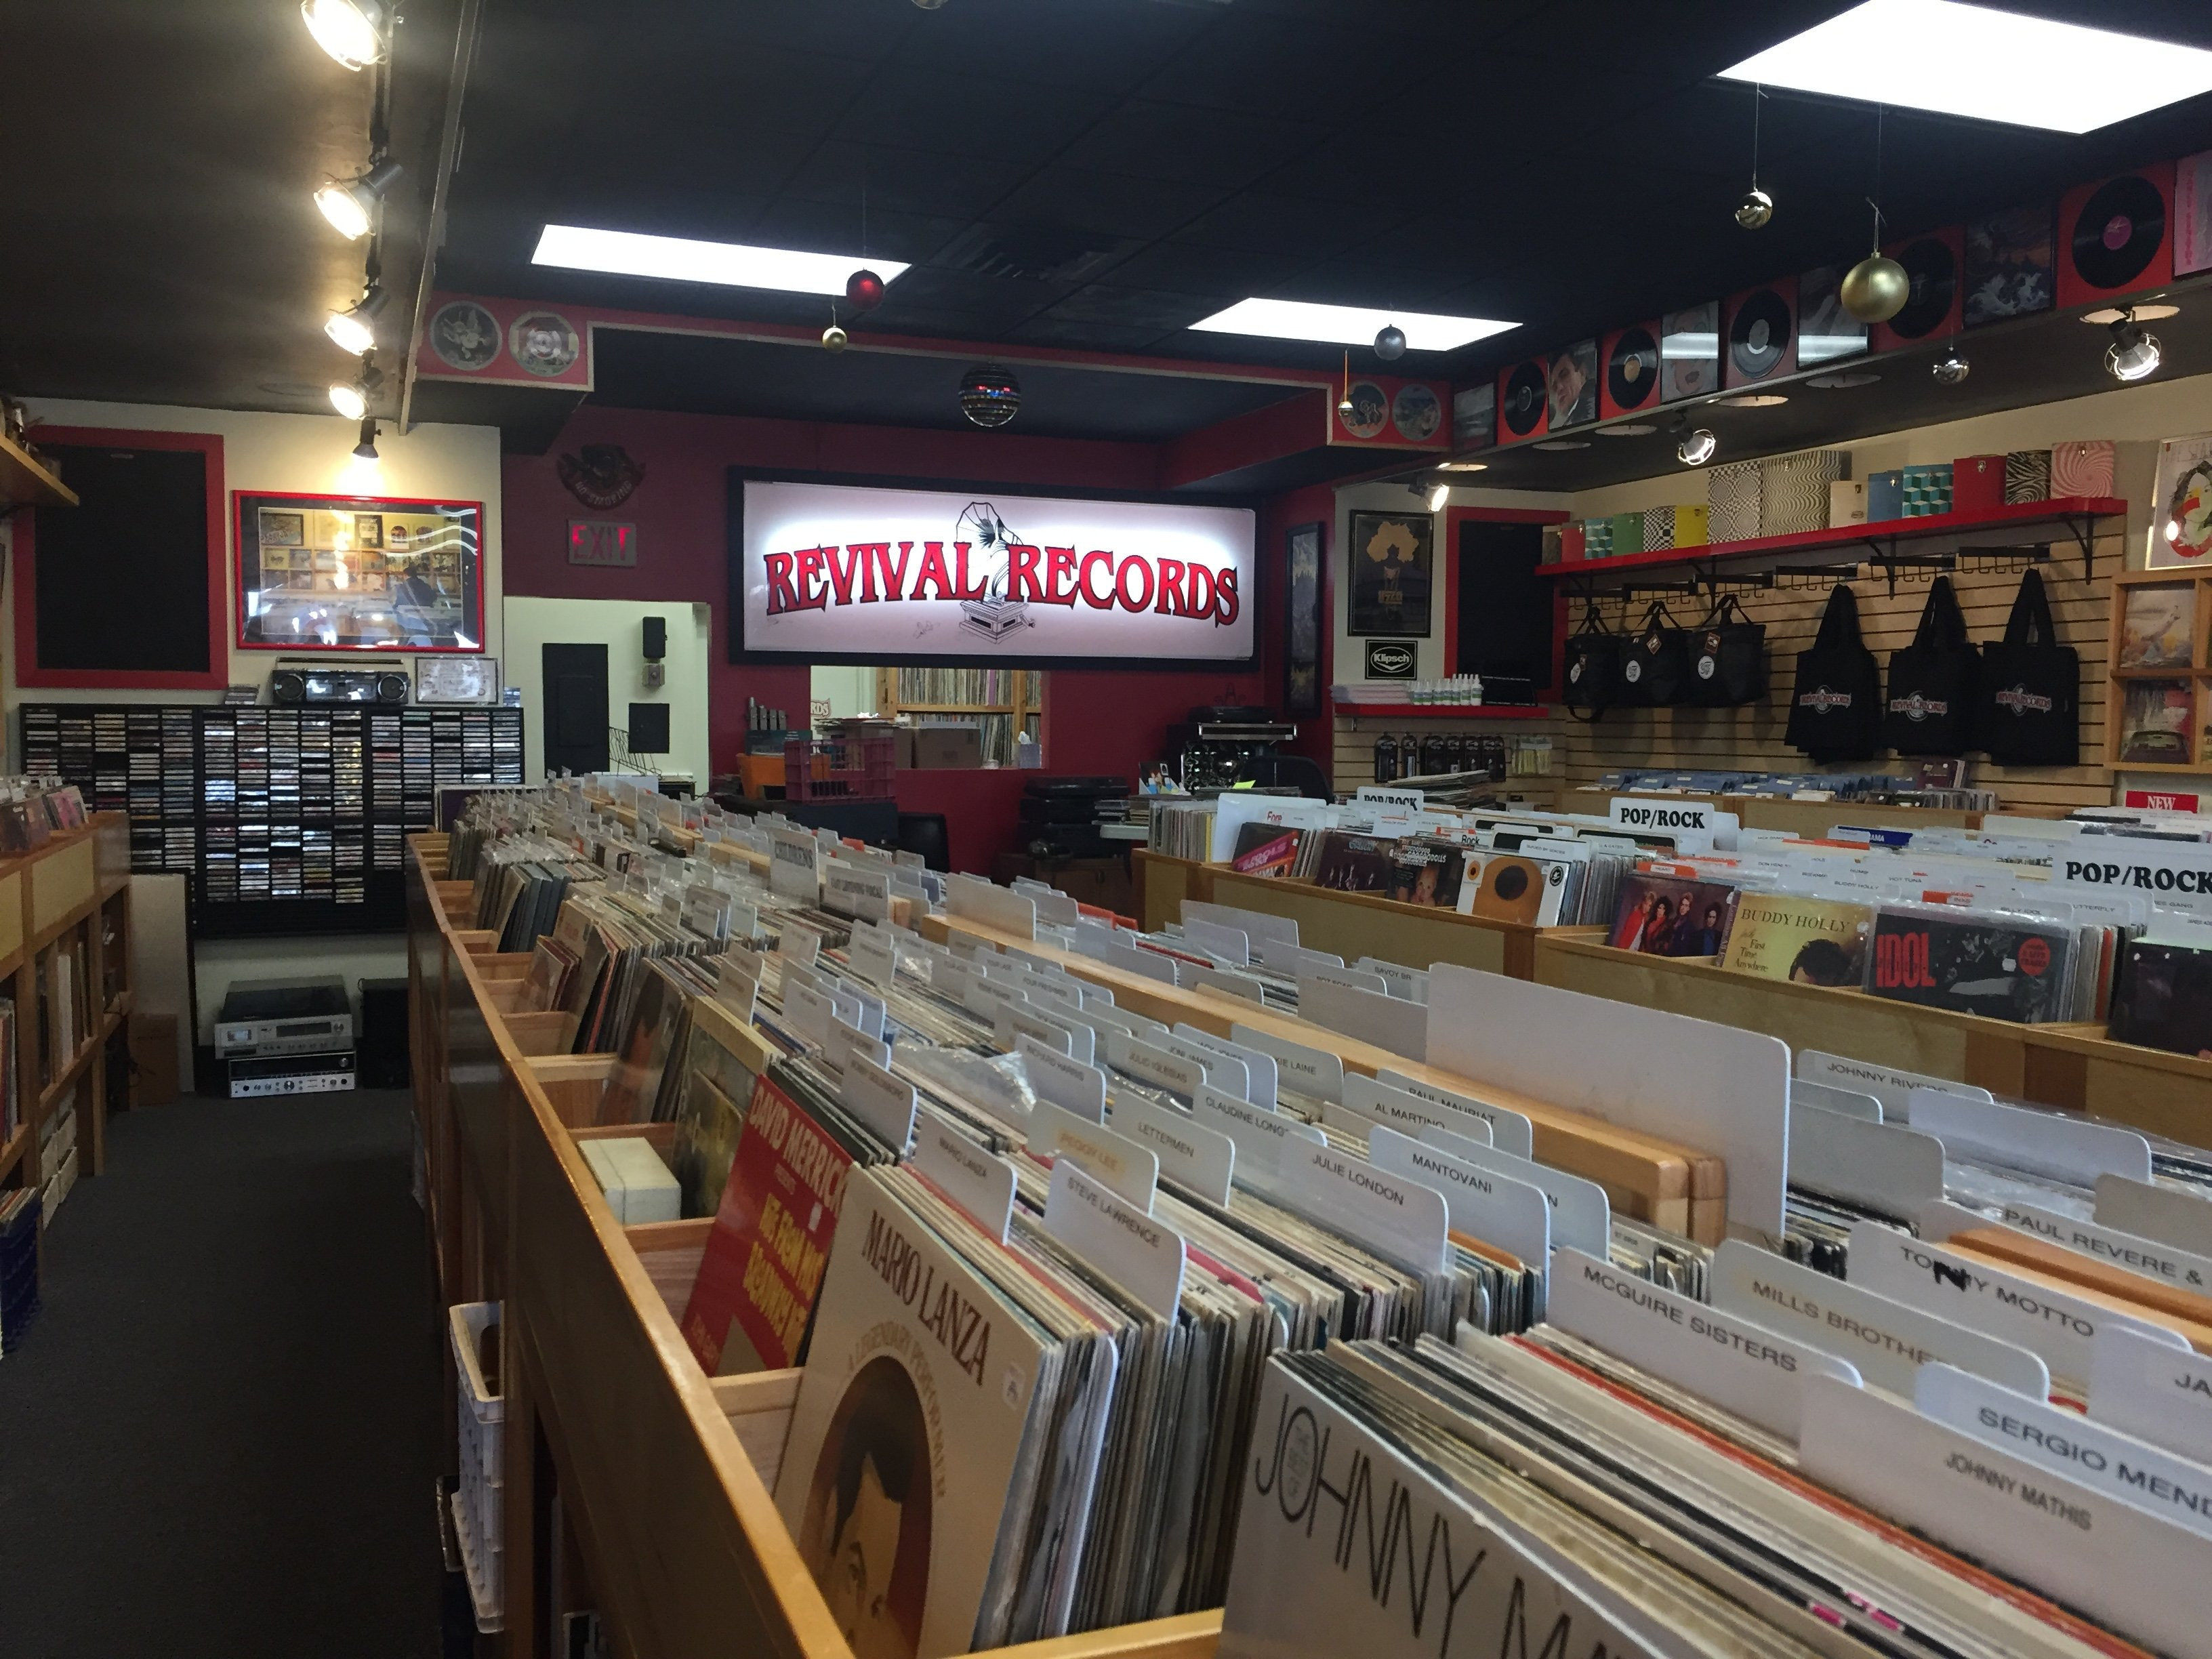 The crates of Revival Records in its third and current location.